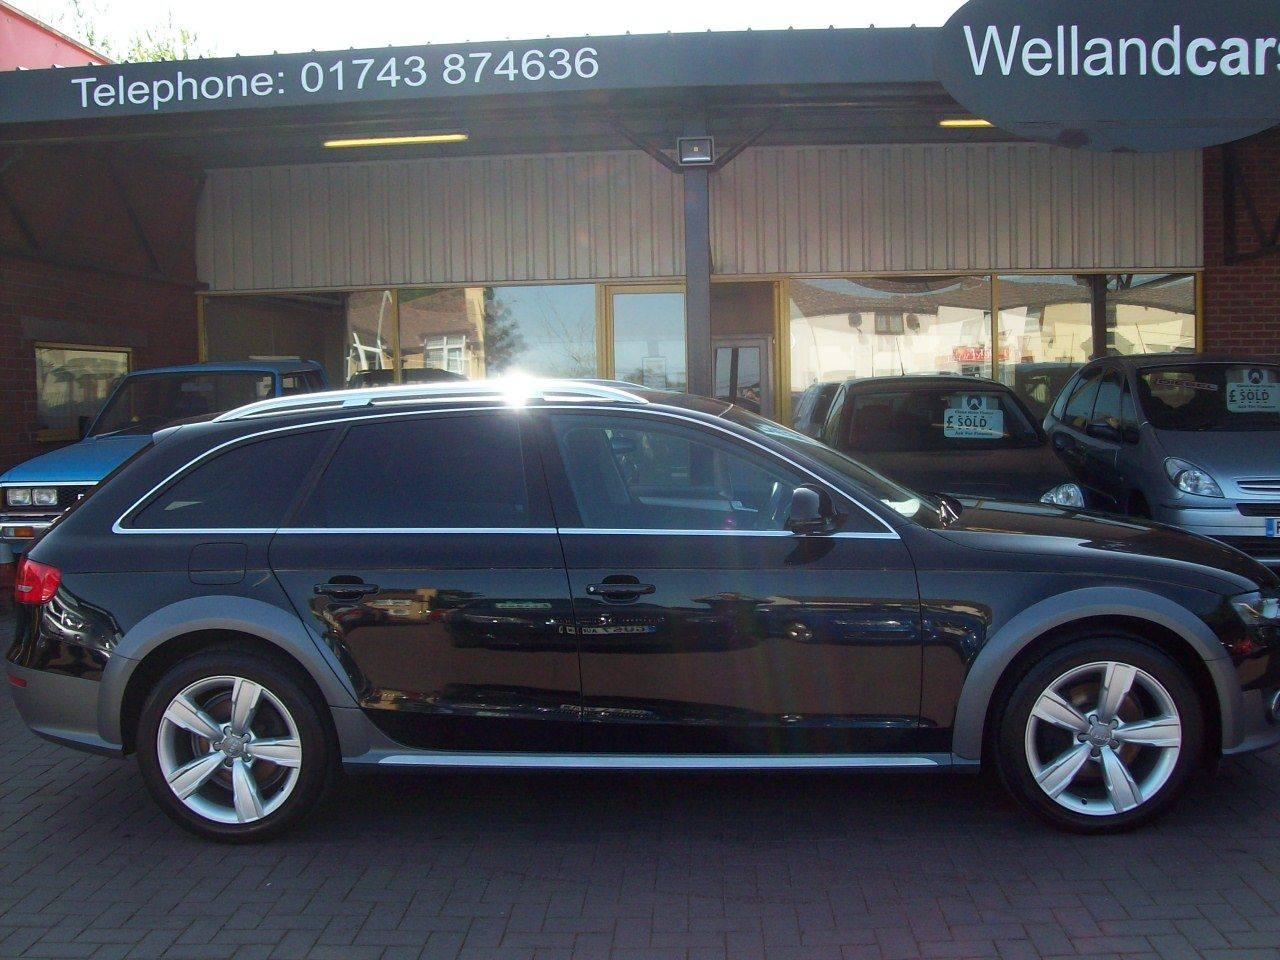 "Audi A4 Allroad 2.0 TDI Quattro 170 5dr, 1 Previous Owner, F/Audi/S/H, Heated Seats, Towpack, 18""Alloys Estate Diesel Black at Welland Cars Shrewsbury"